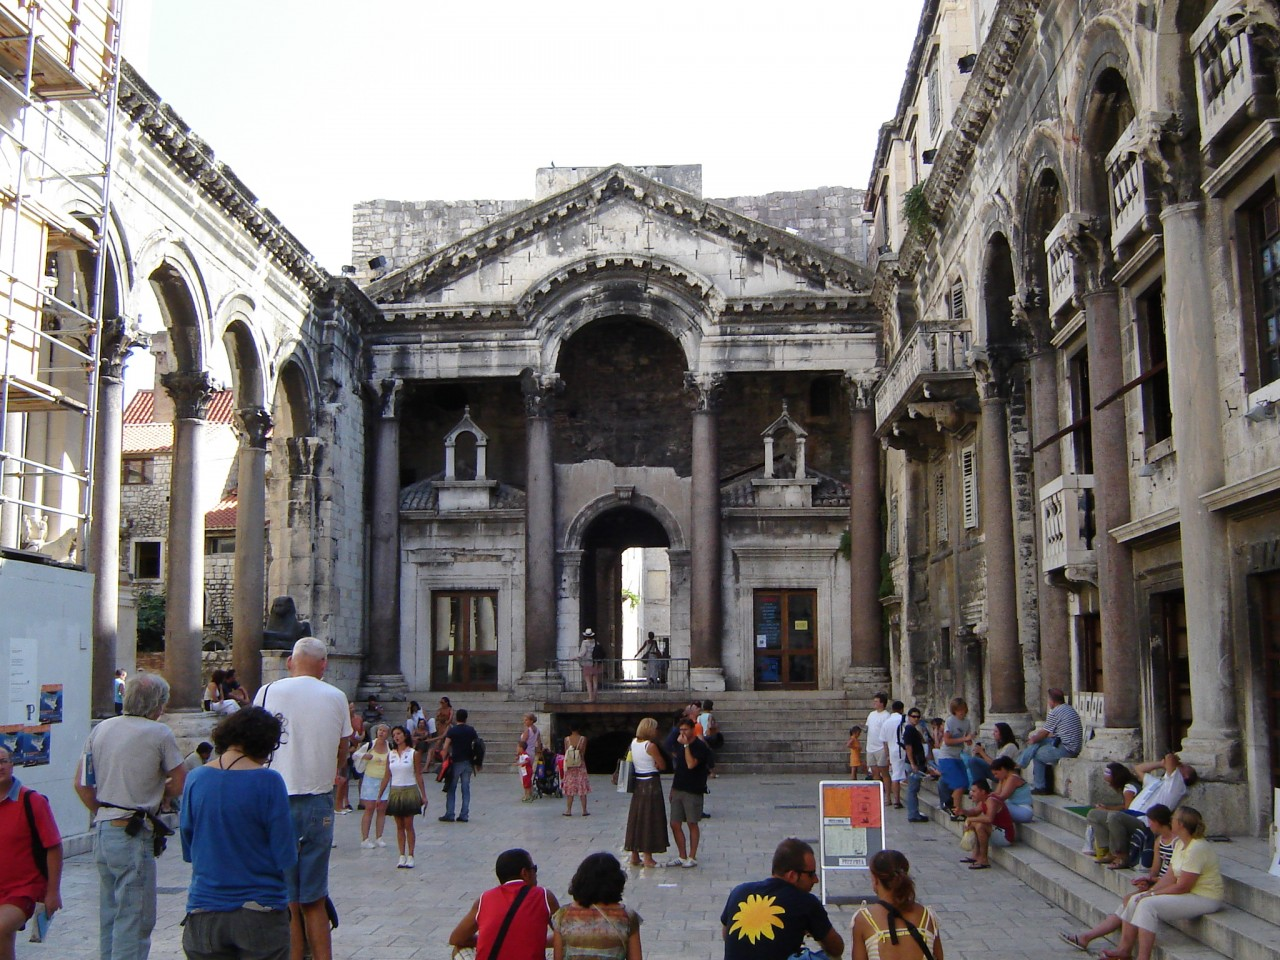 Roman palace courtyard in Split, Croatia